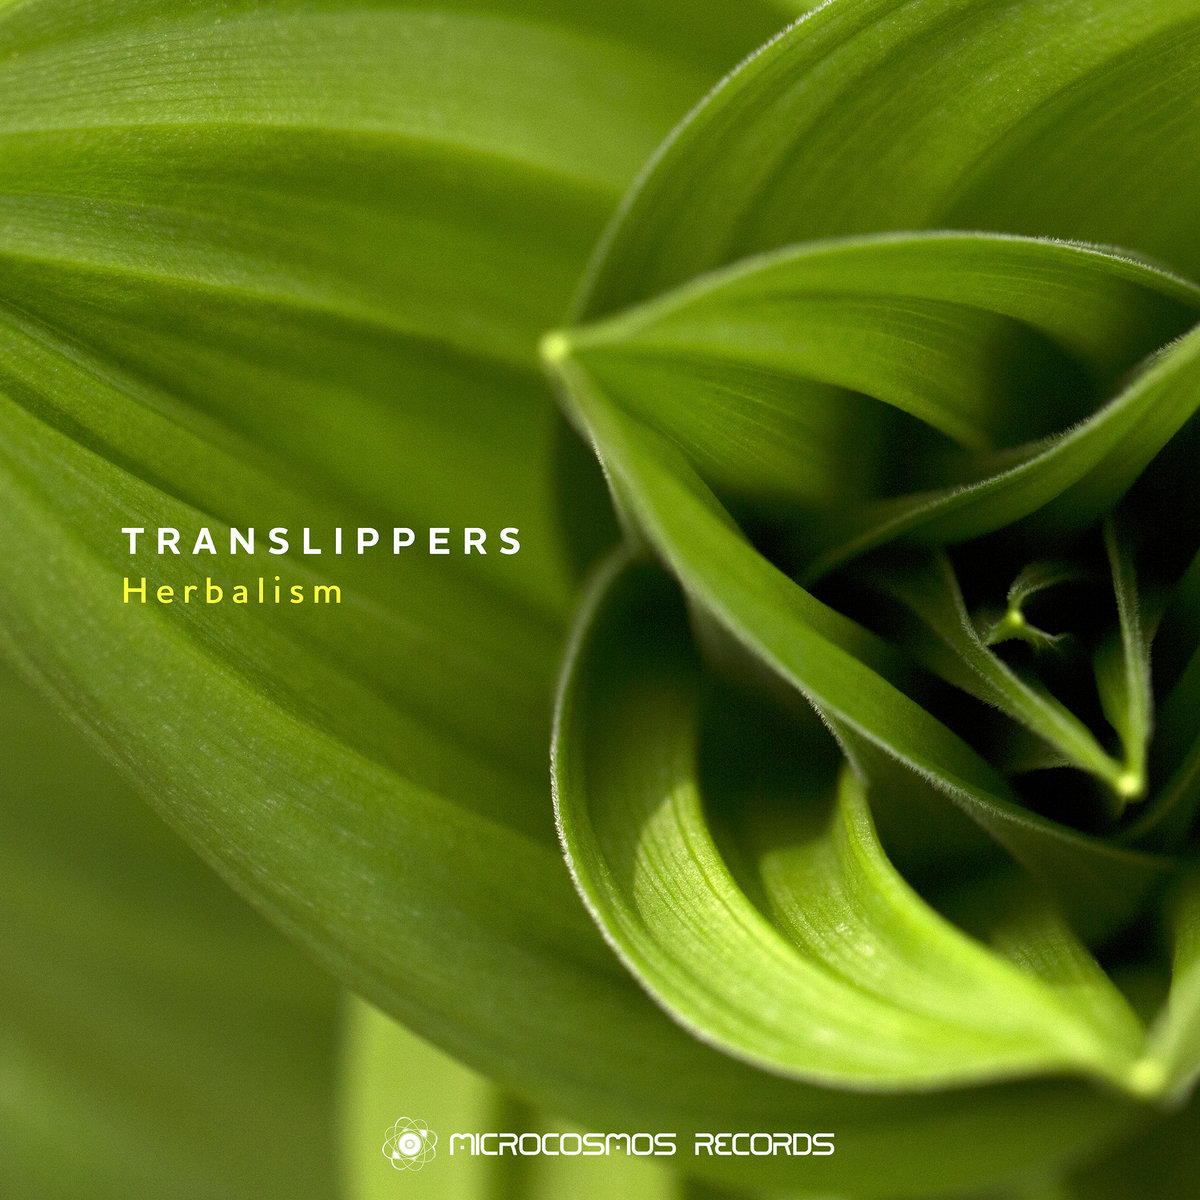 Translippers - Cosmocats @ 'Herbalism' album (ambient, chill-out)